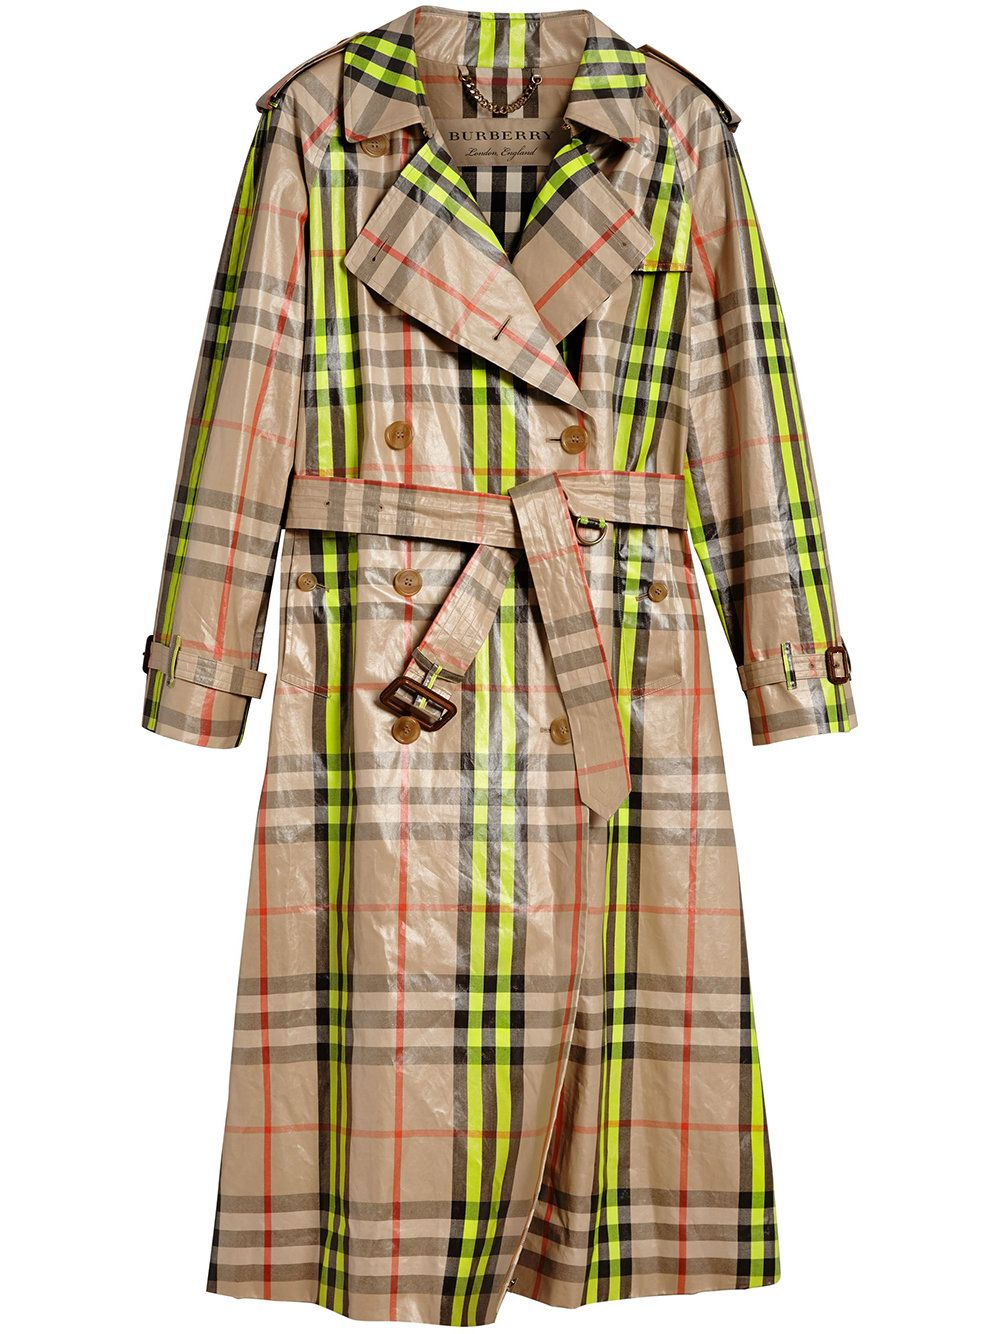 af5f0340cabea0 Burberry Laminated Check Trench Coat – Online Exclusive | chartreuse ...